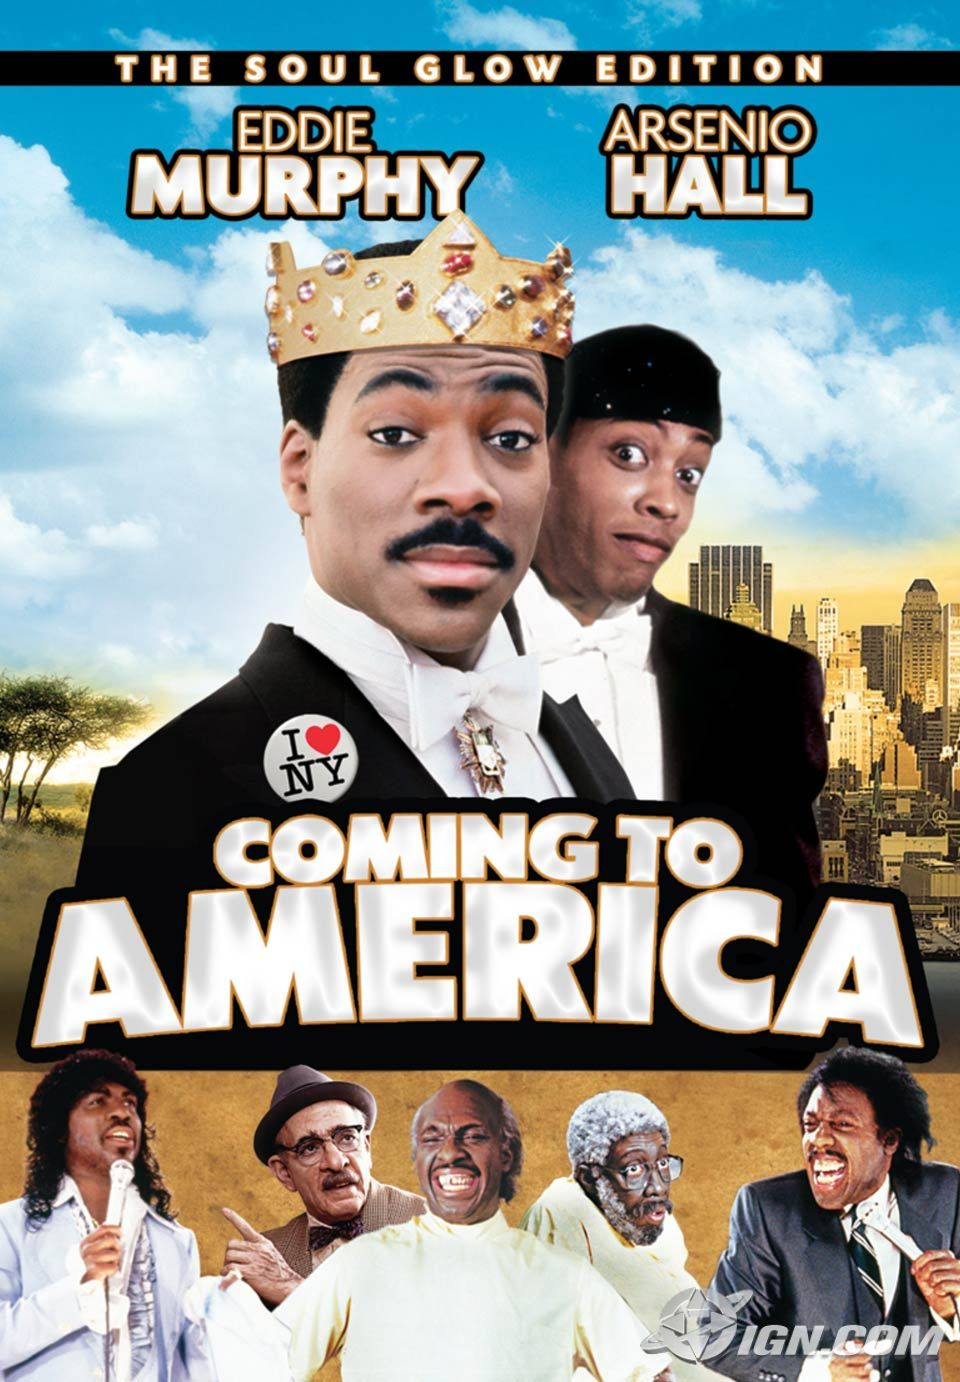 coming to america eddie murphy